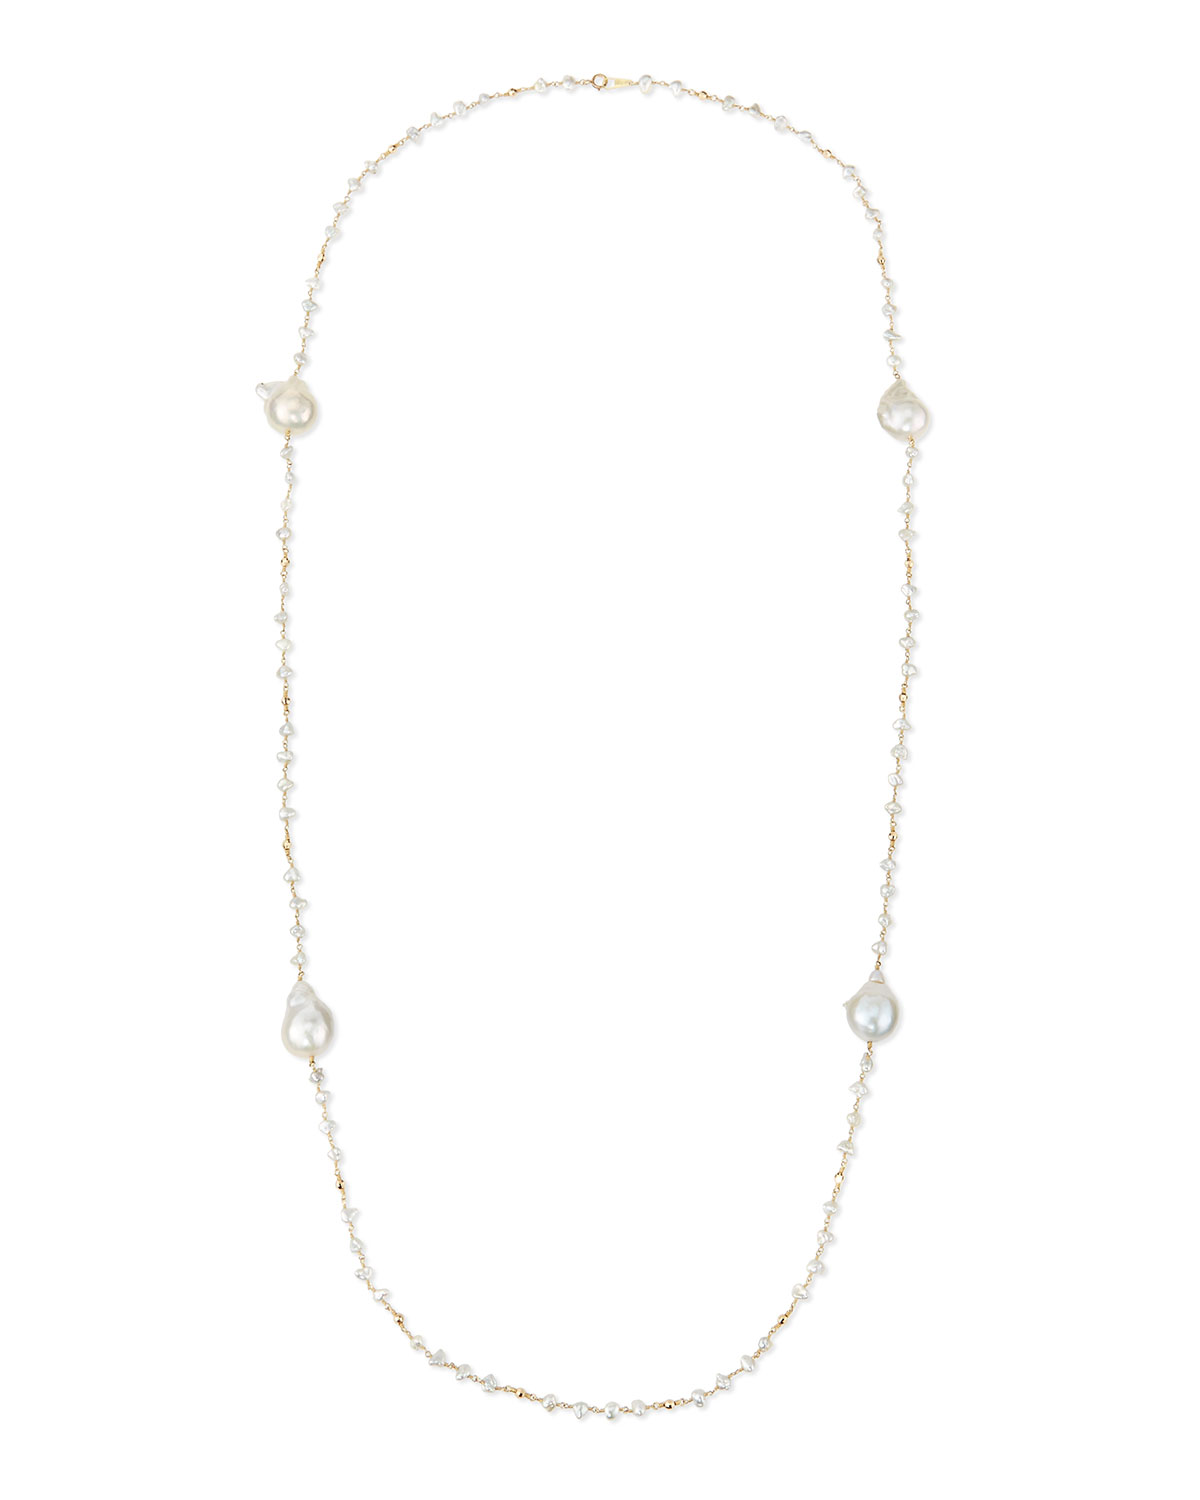 Keshi Pearl Necklace, 42